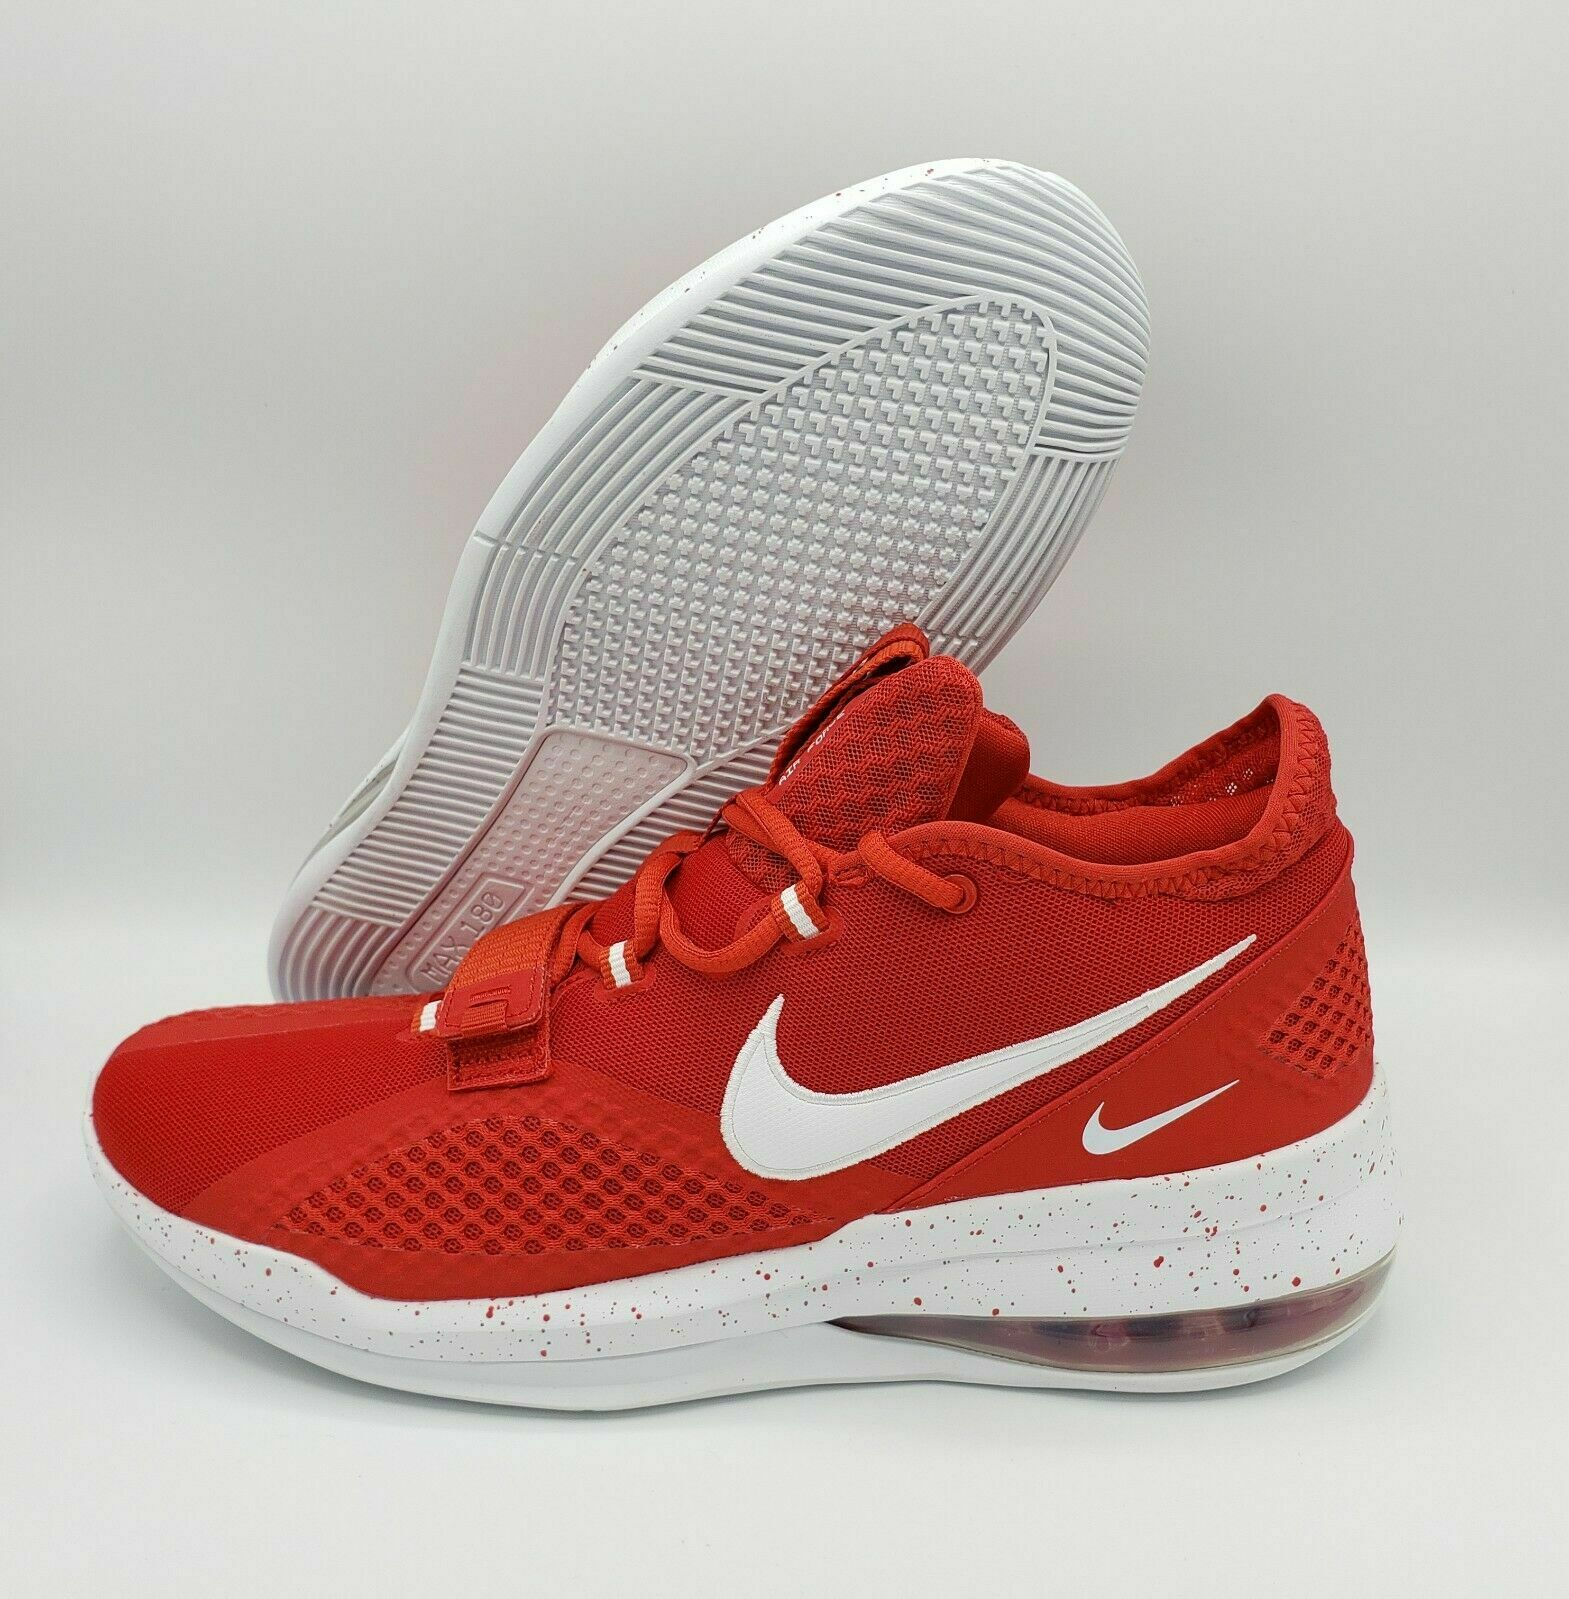 NIKE AIR FORCE MAX 180 LOW RED WHITE BASKETBALL CN9517- 603